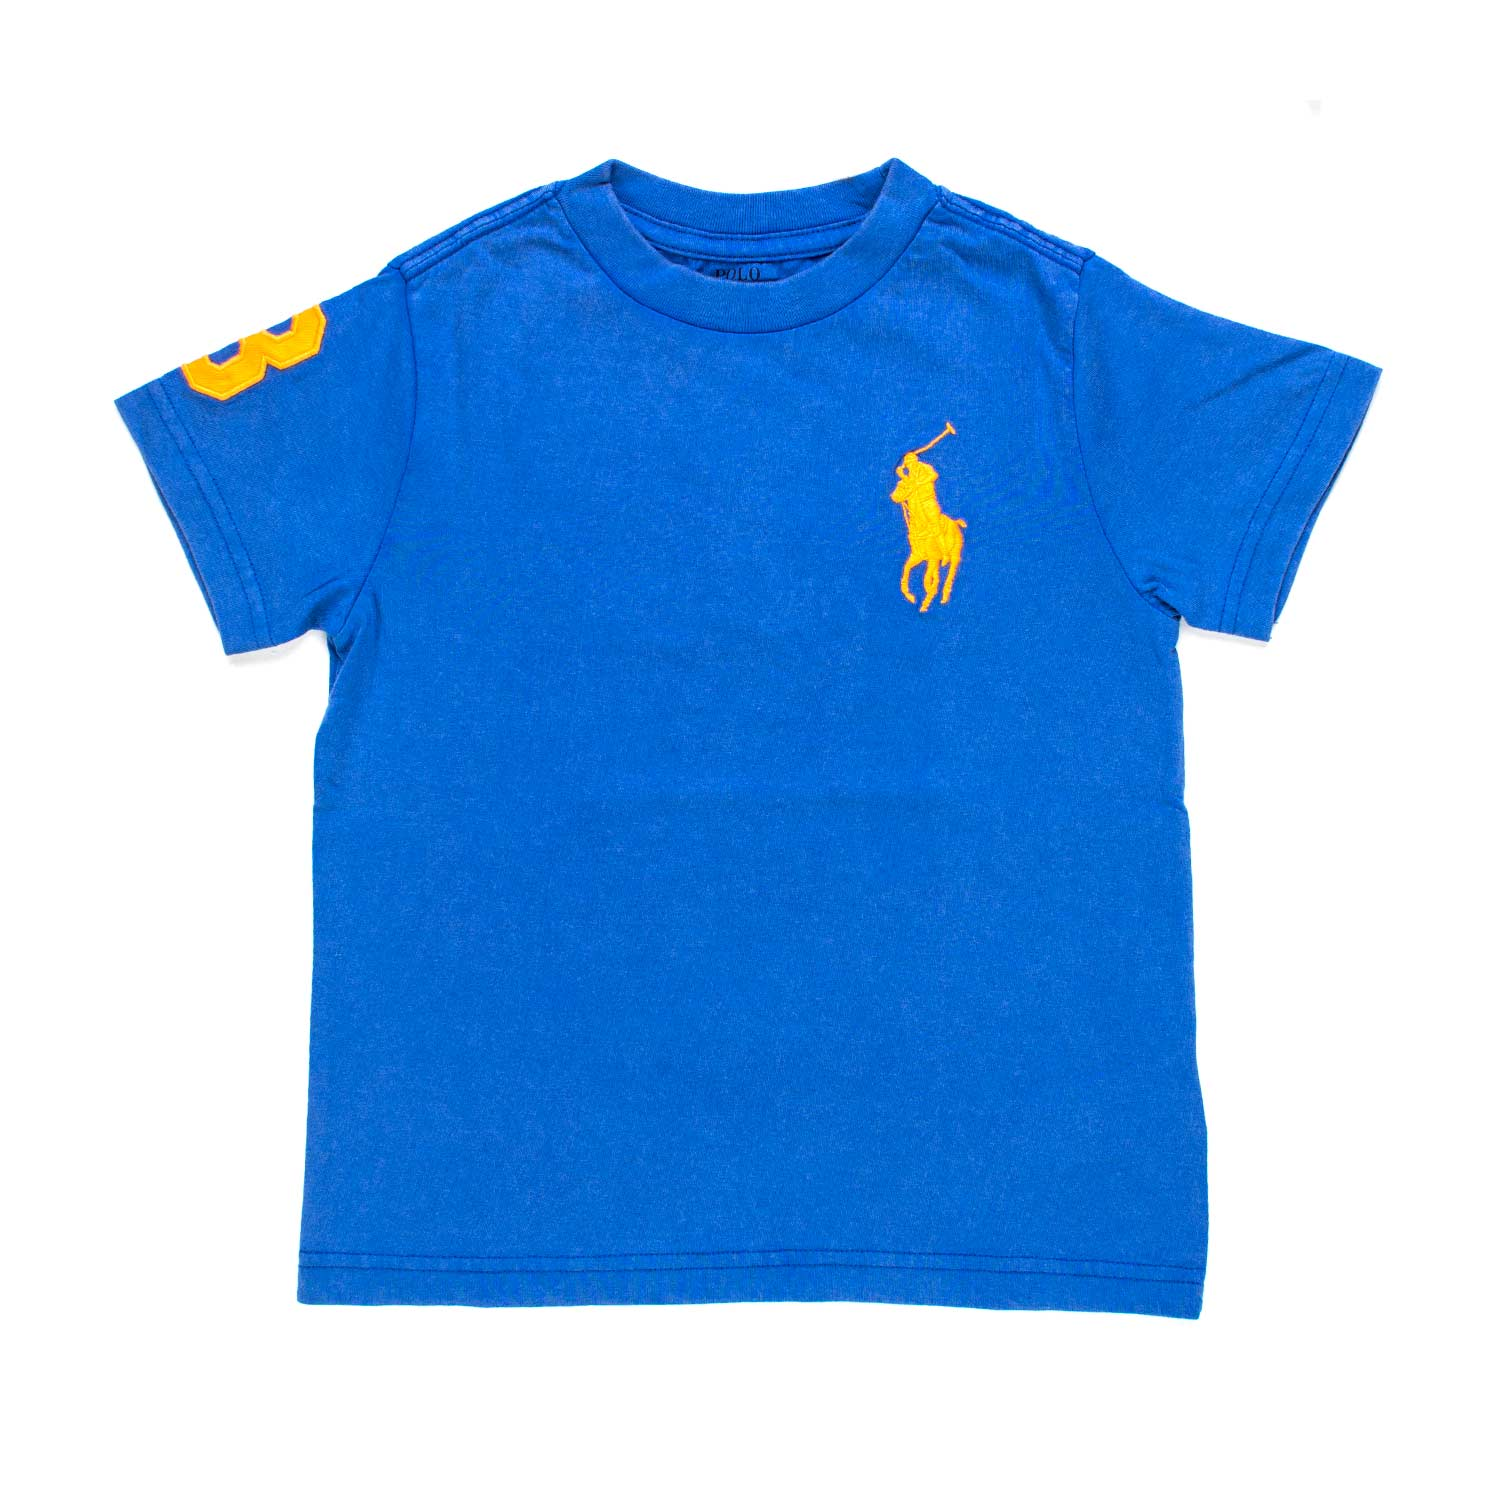 94d913e59 ... bambino small pony breve maniche polo pleated giletito biancoprezzo  borsa ralph lauren usa ralph lauren cotton jersey crewneck t shirt boy  light blue ...